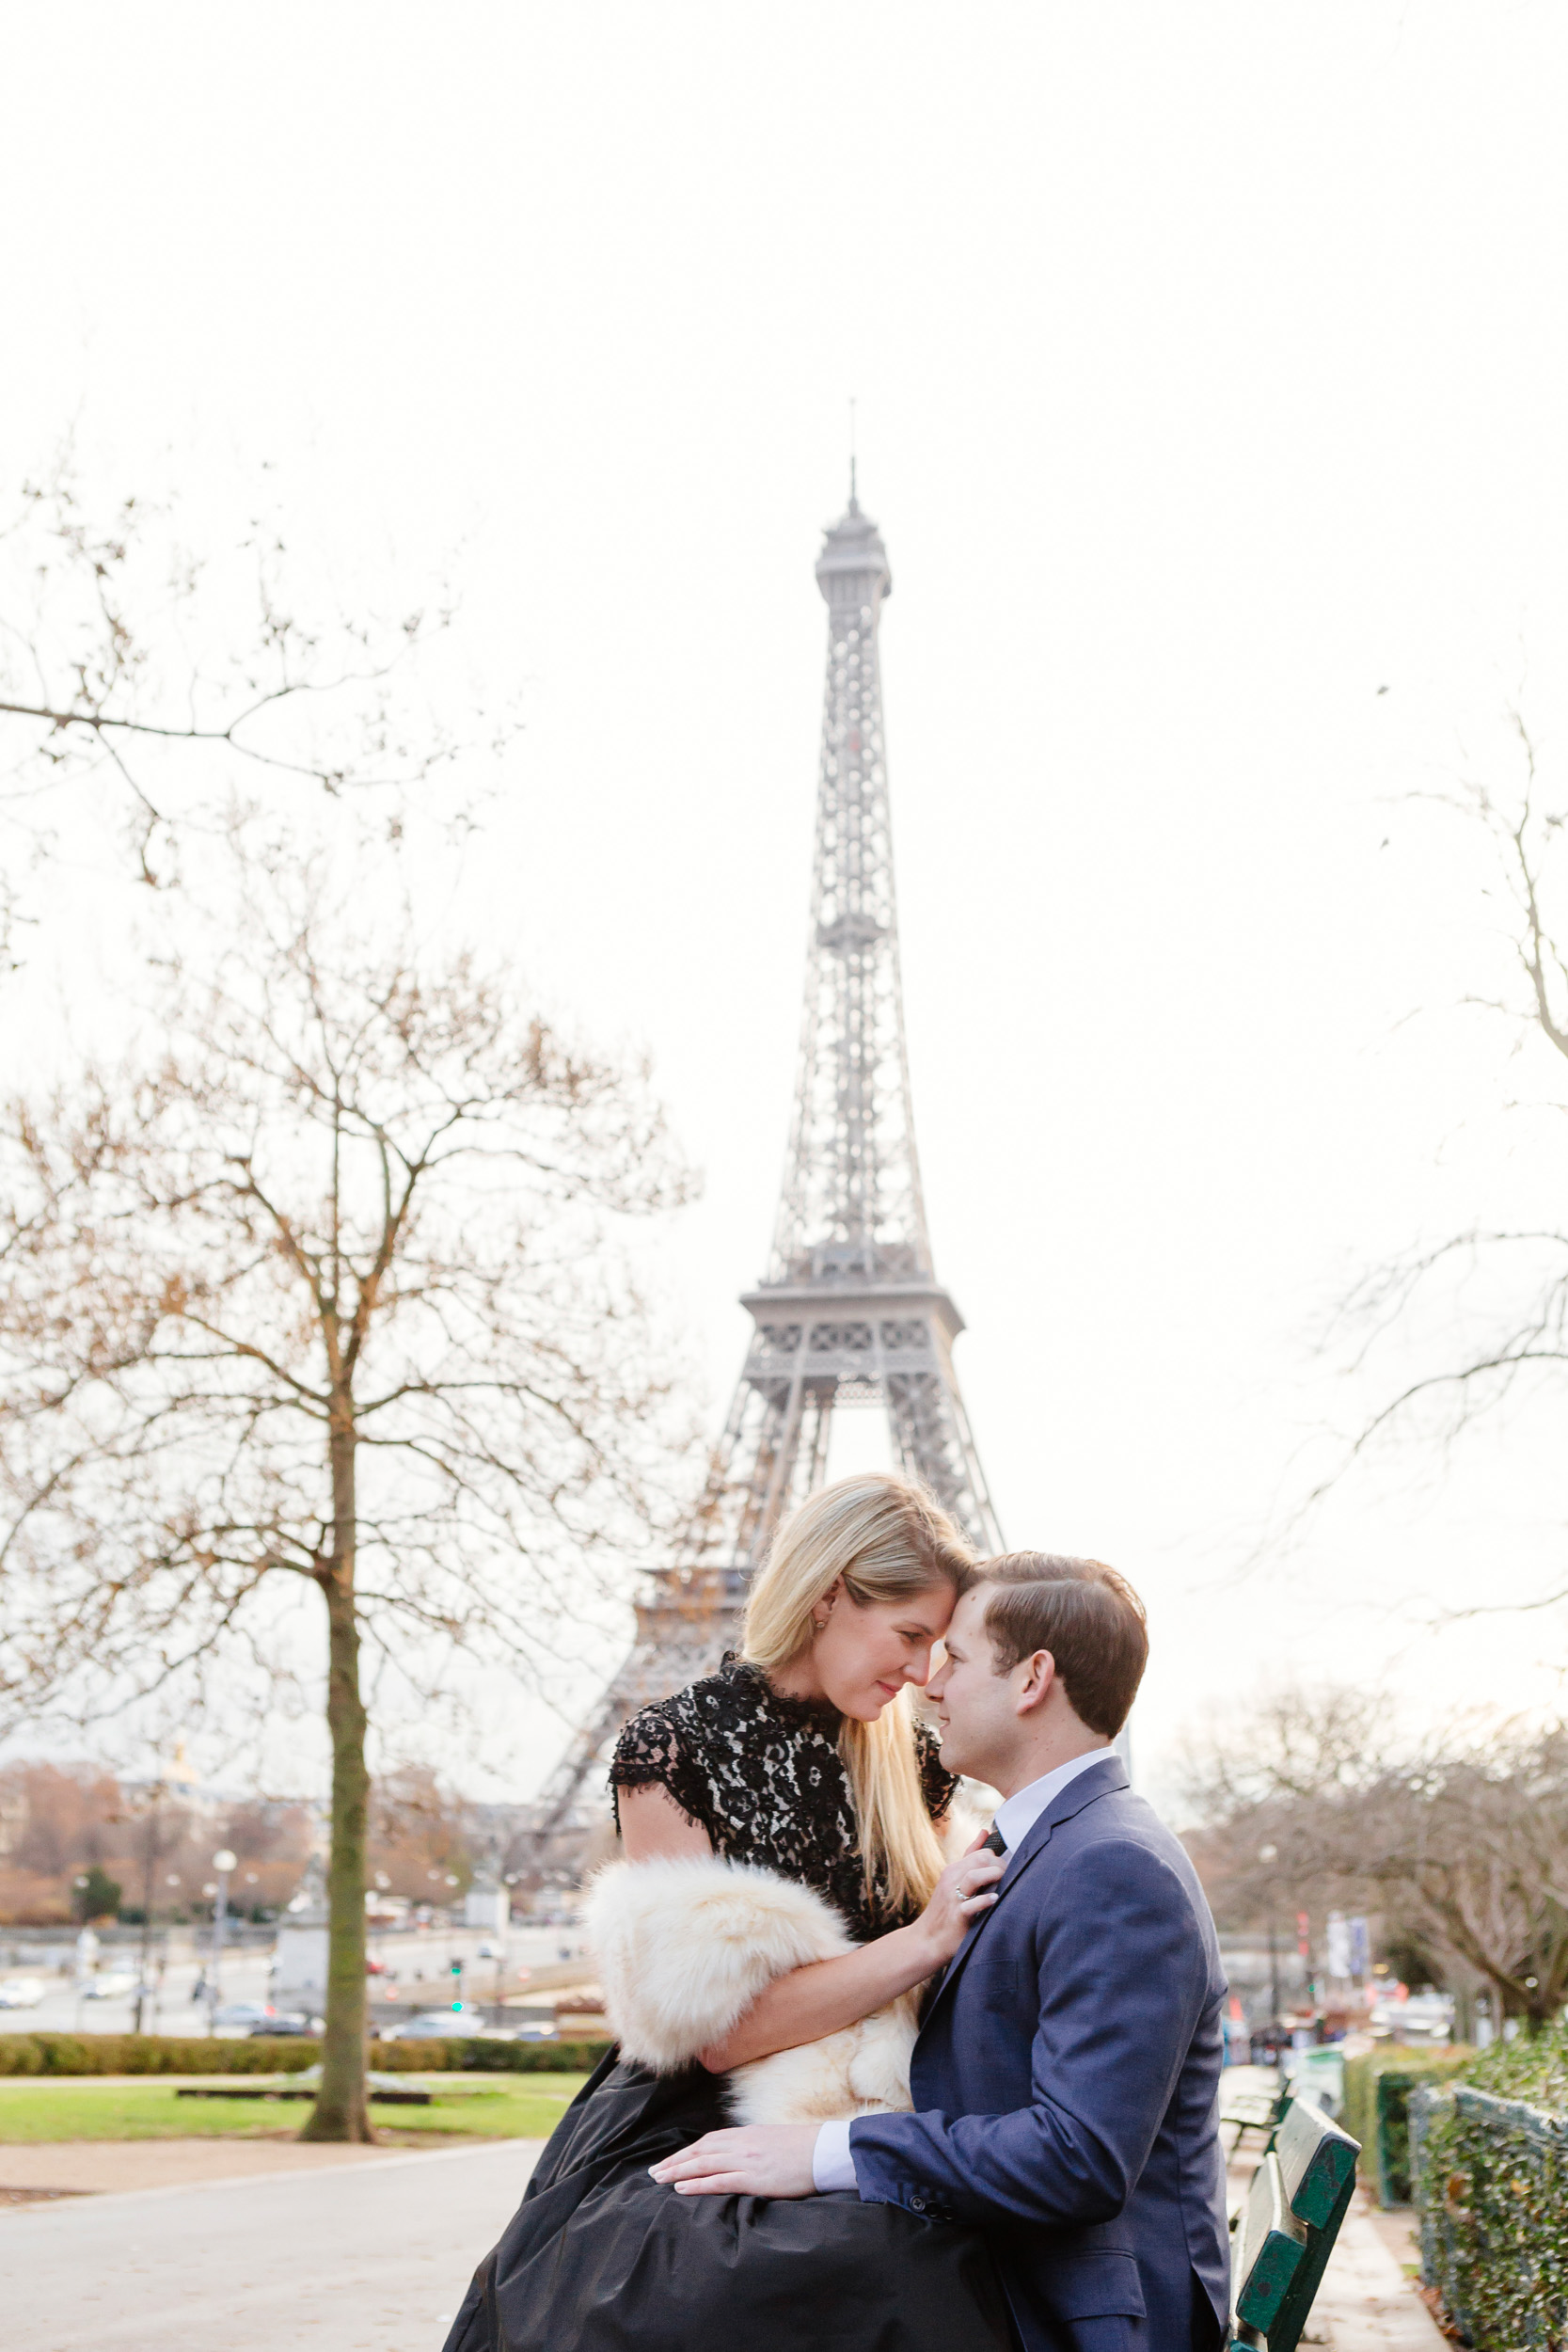 Paris vacation couple portrait sitting on a bench at Trocadero with the view of Eiffel Tower captured by Paris Photographer Federico Guendel www.iheartparis.fr